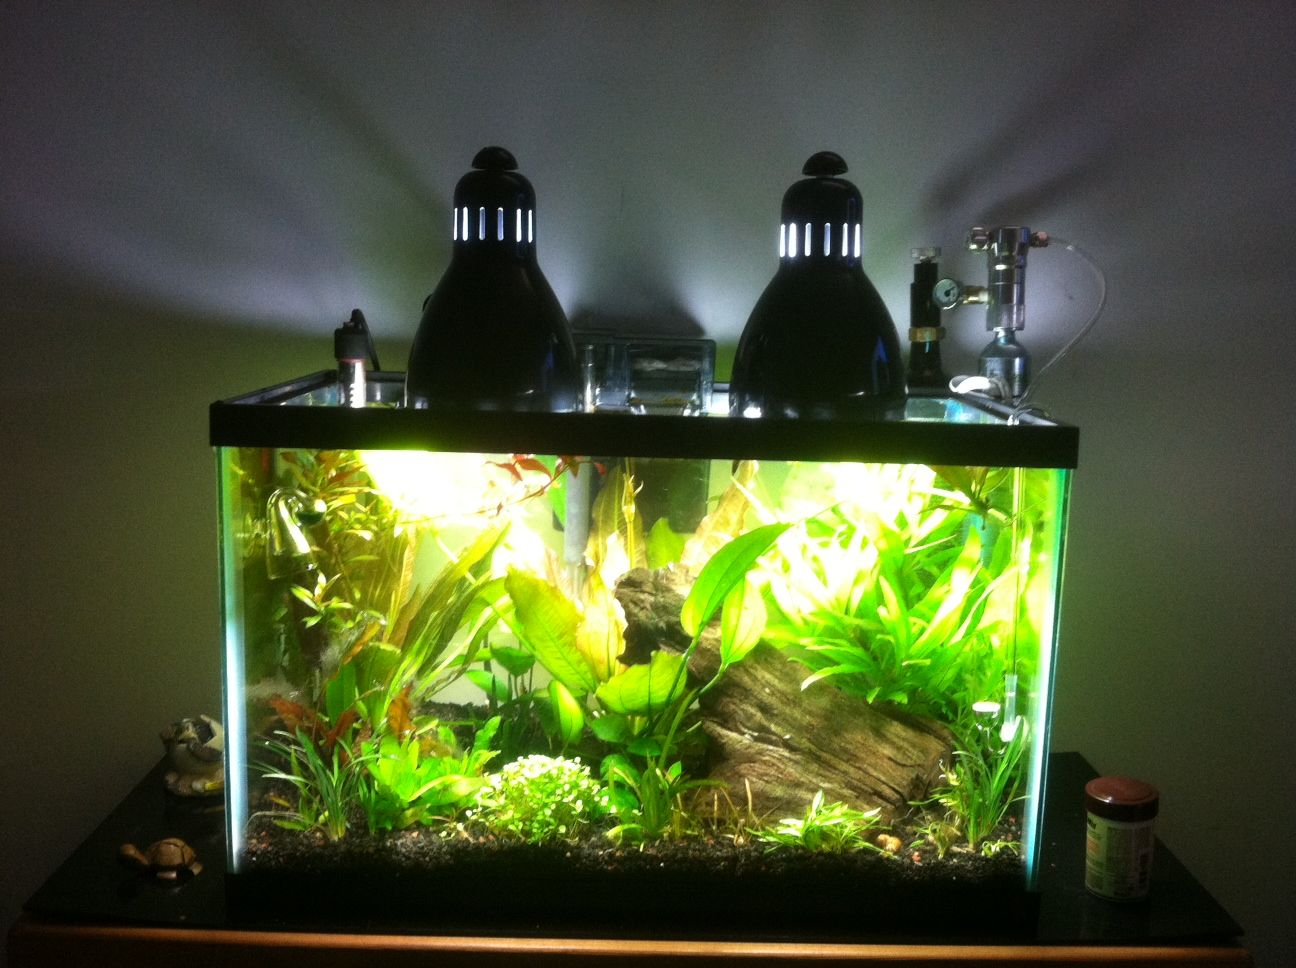 Hi Everyone Right Now I Have A 10 Gallon Planted Tank For Lighting I Have A 6500k 20w Bulb In A Desk Lamp Sitting On Planted Aquarium Light Fixtures Plants